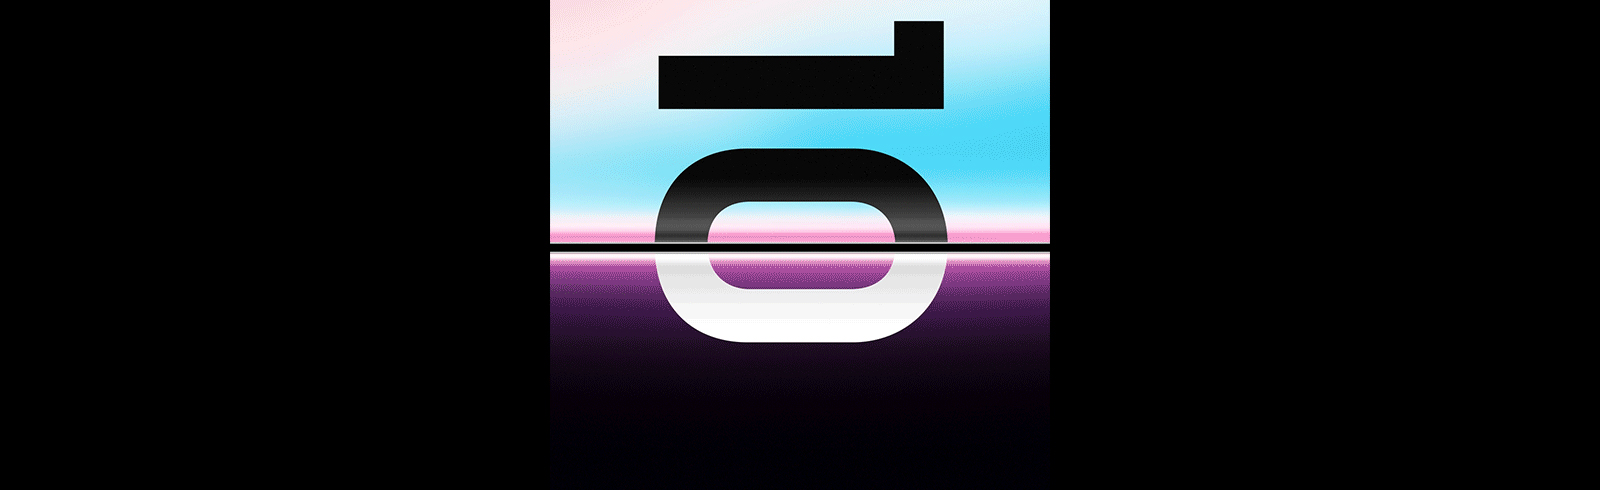 Samsung S10 enters mass production, triple cameras, ultrasonic fingerprint sensor confirmed